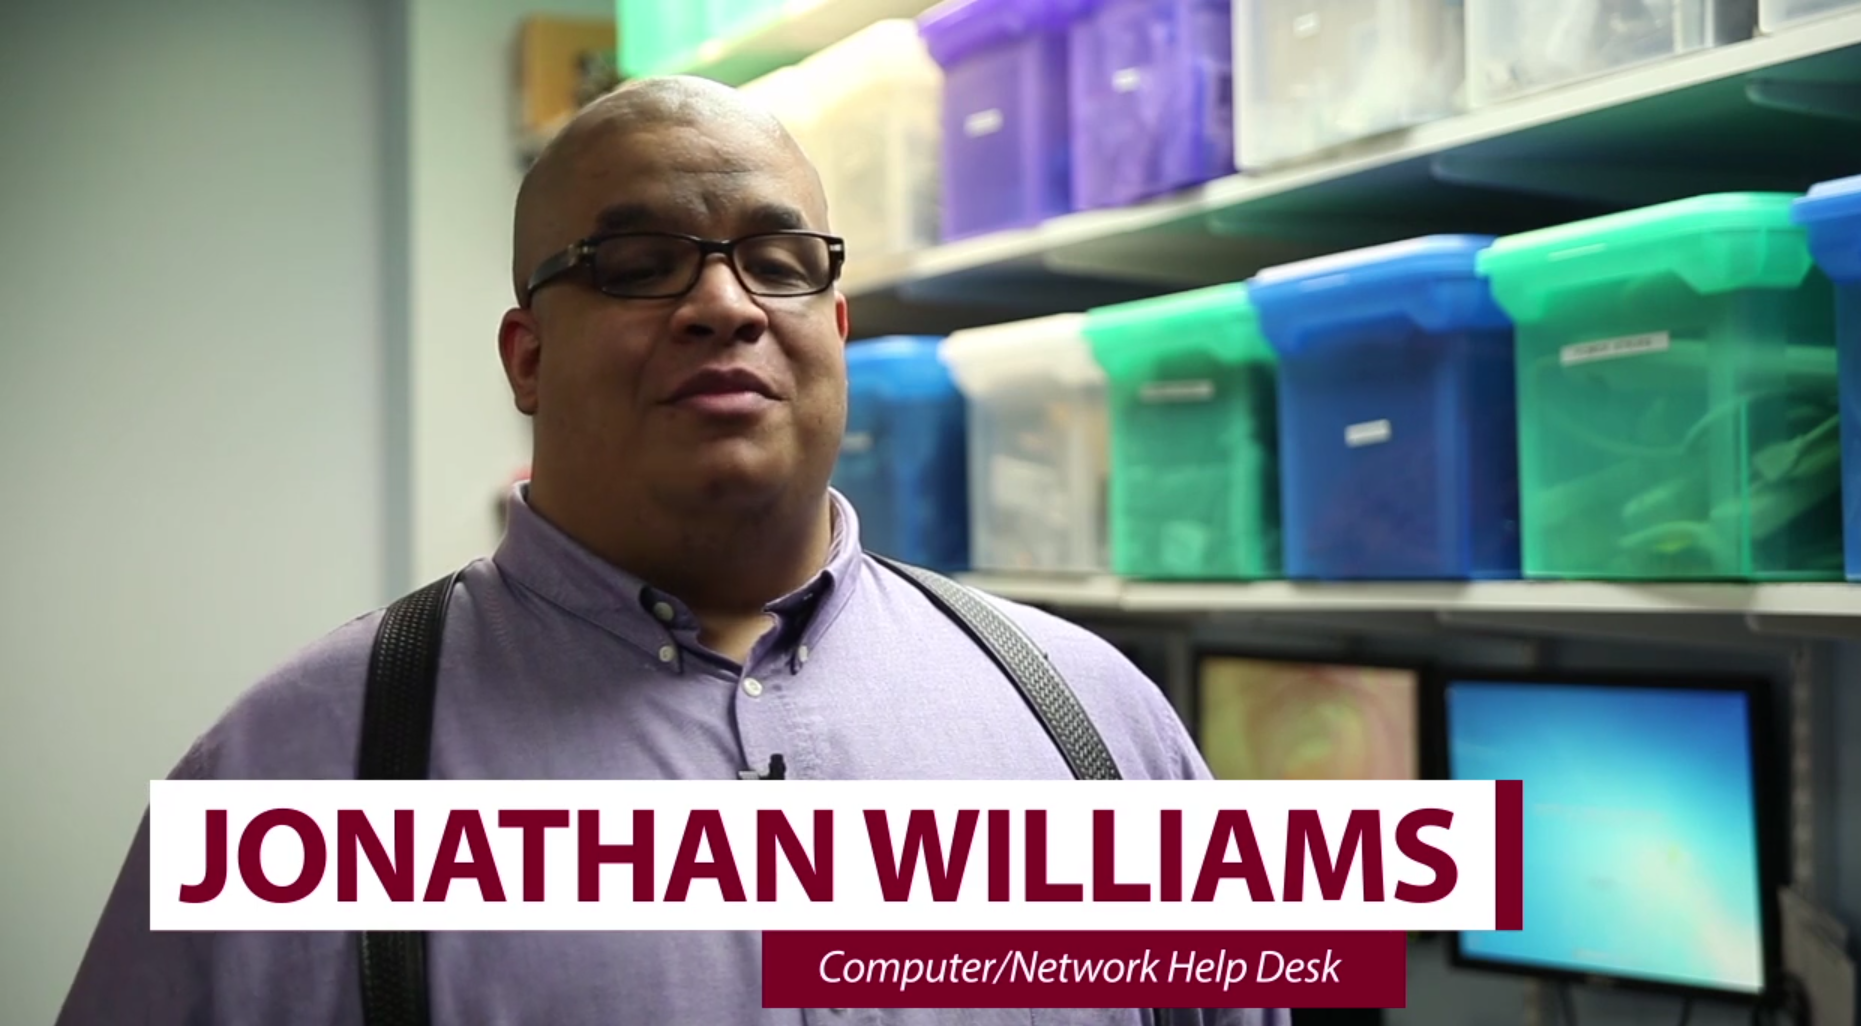 Meet Jonathan Williams